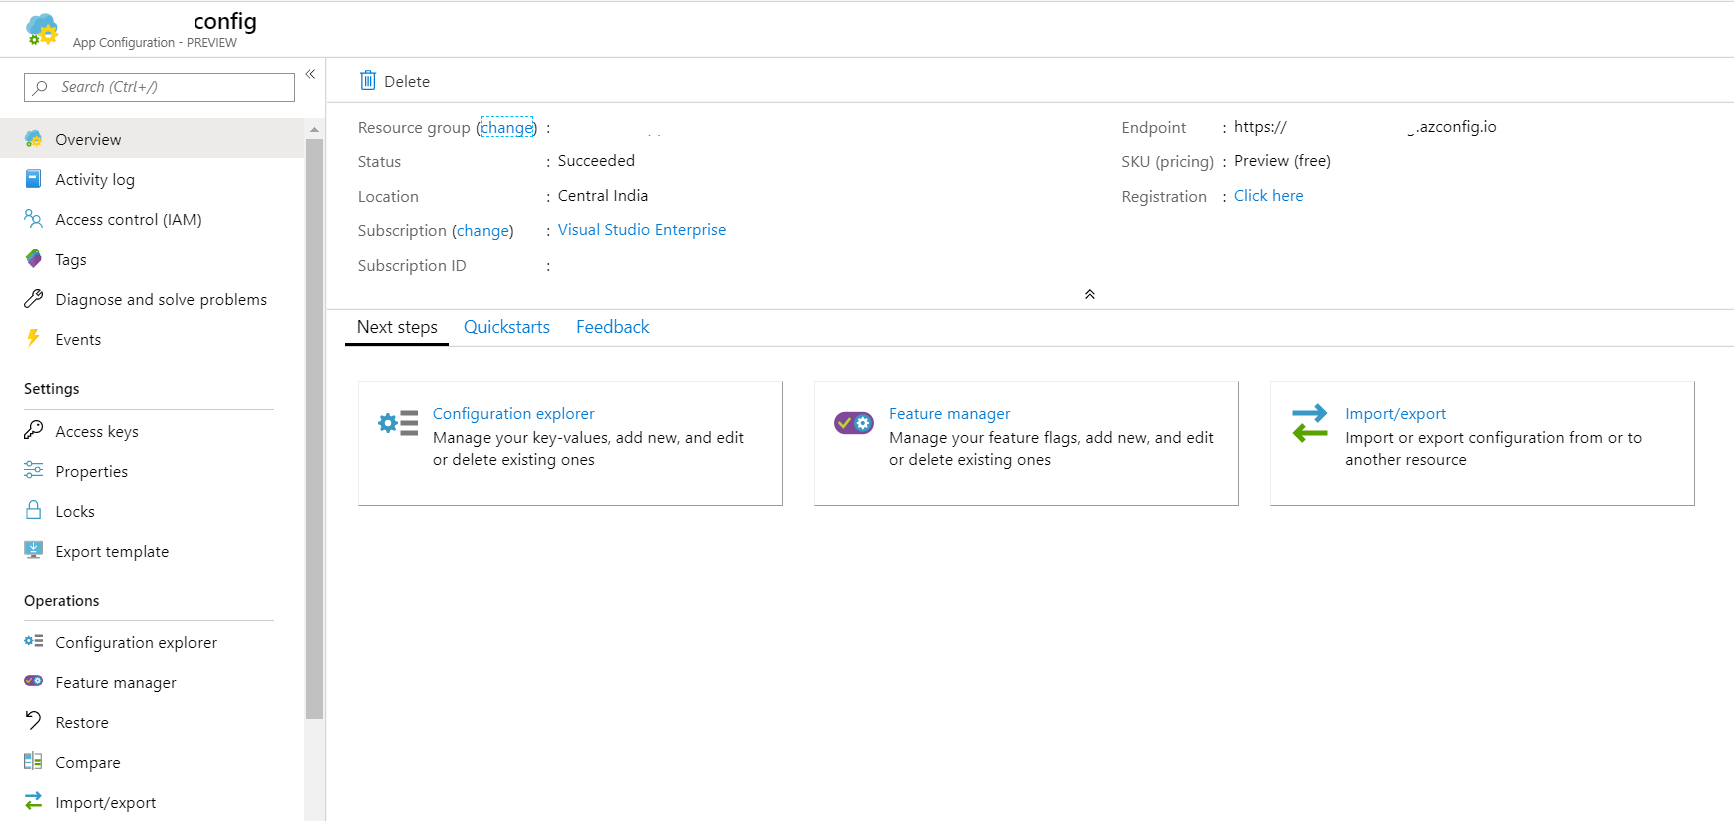 Azure App Configuration - Feature Manager - Settings